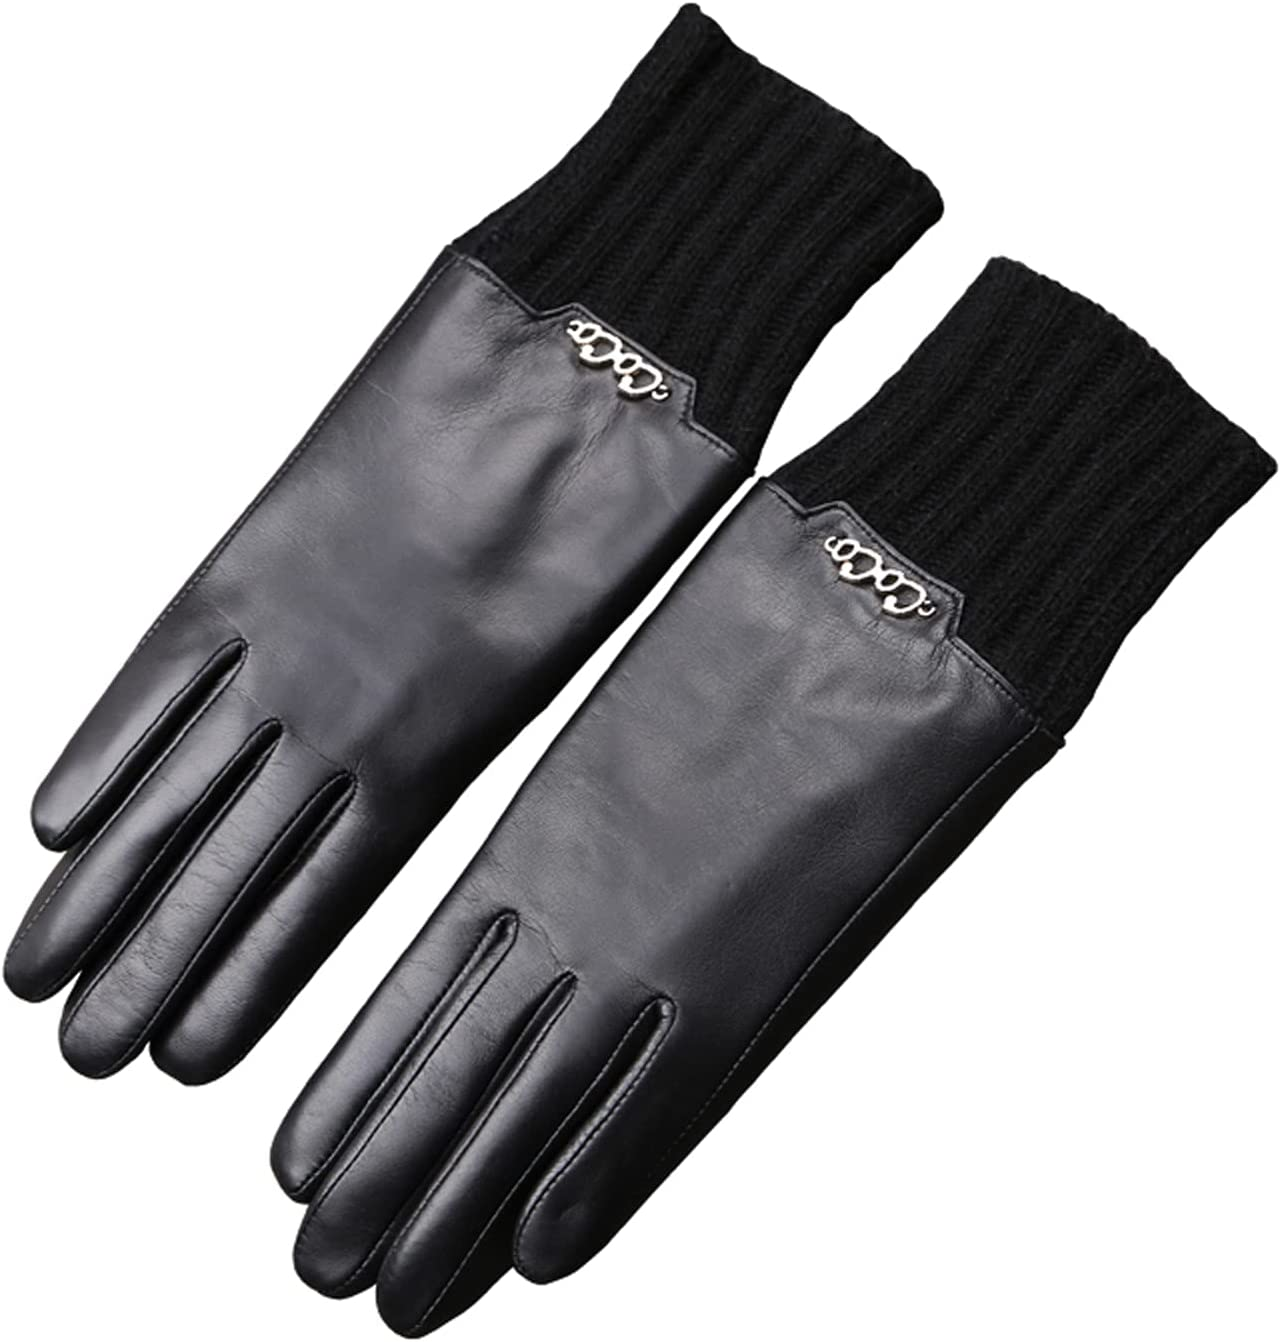 Jjshueryg Max 49% OFF Women's Leather Gloves with Line Woolen and Full Inner Dedication